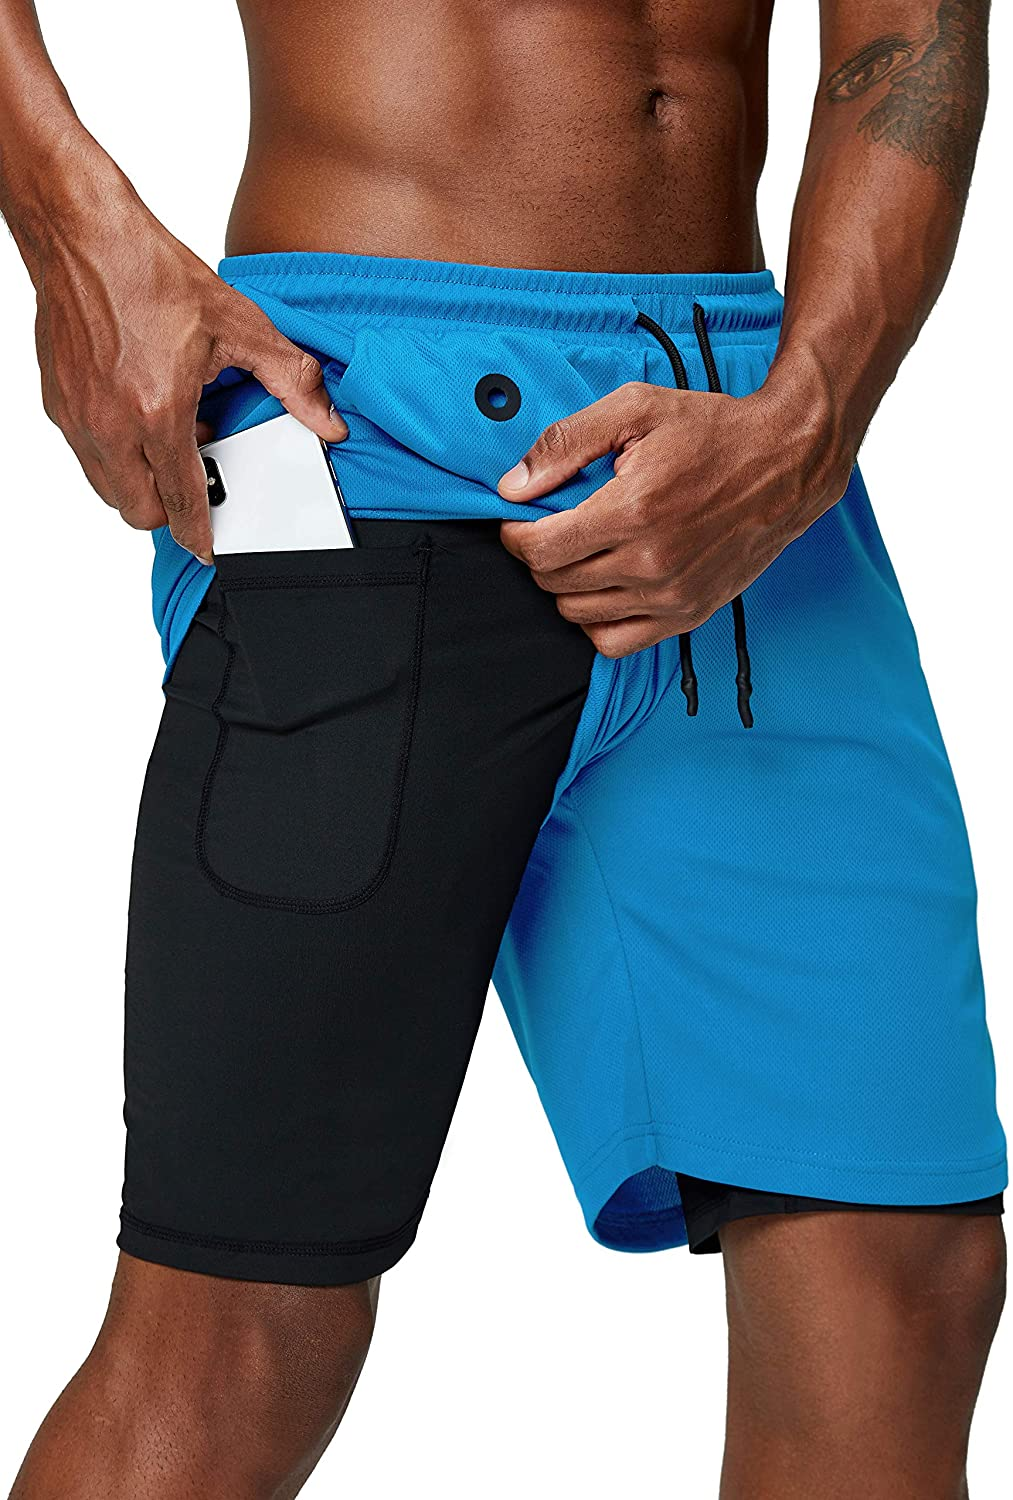 Pinkbomb Men's 2 in Max 71% OFF 1 Running Shorts Quick Gym Workout Mens Seattle Mall Dry